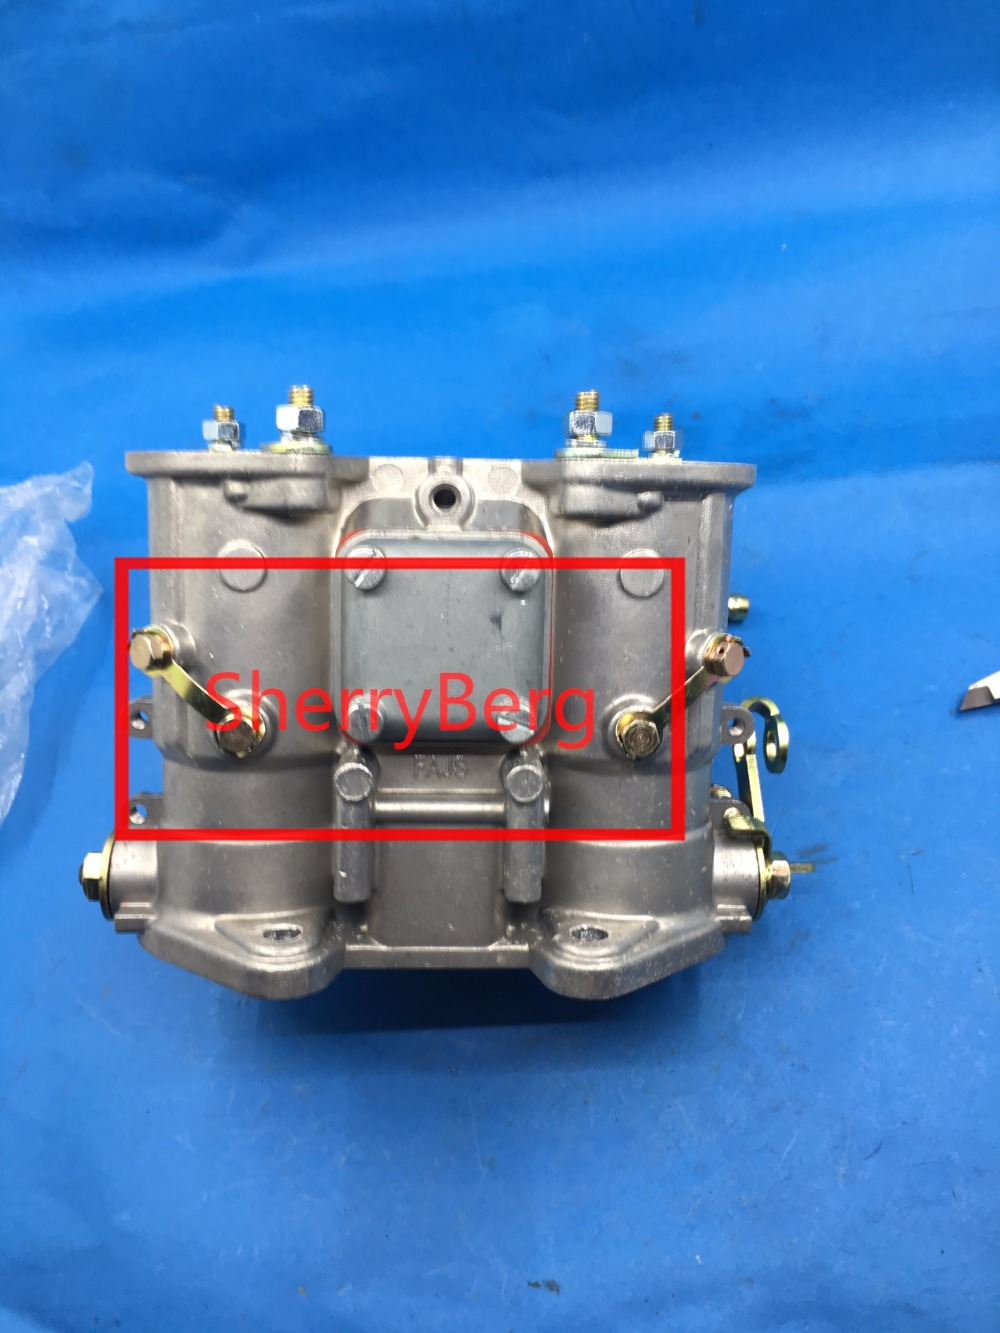 Compare Prices on Dcoe Carburetor- Online Shopping/Buy Low Price ...